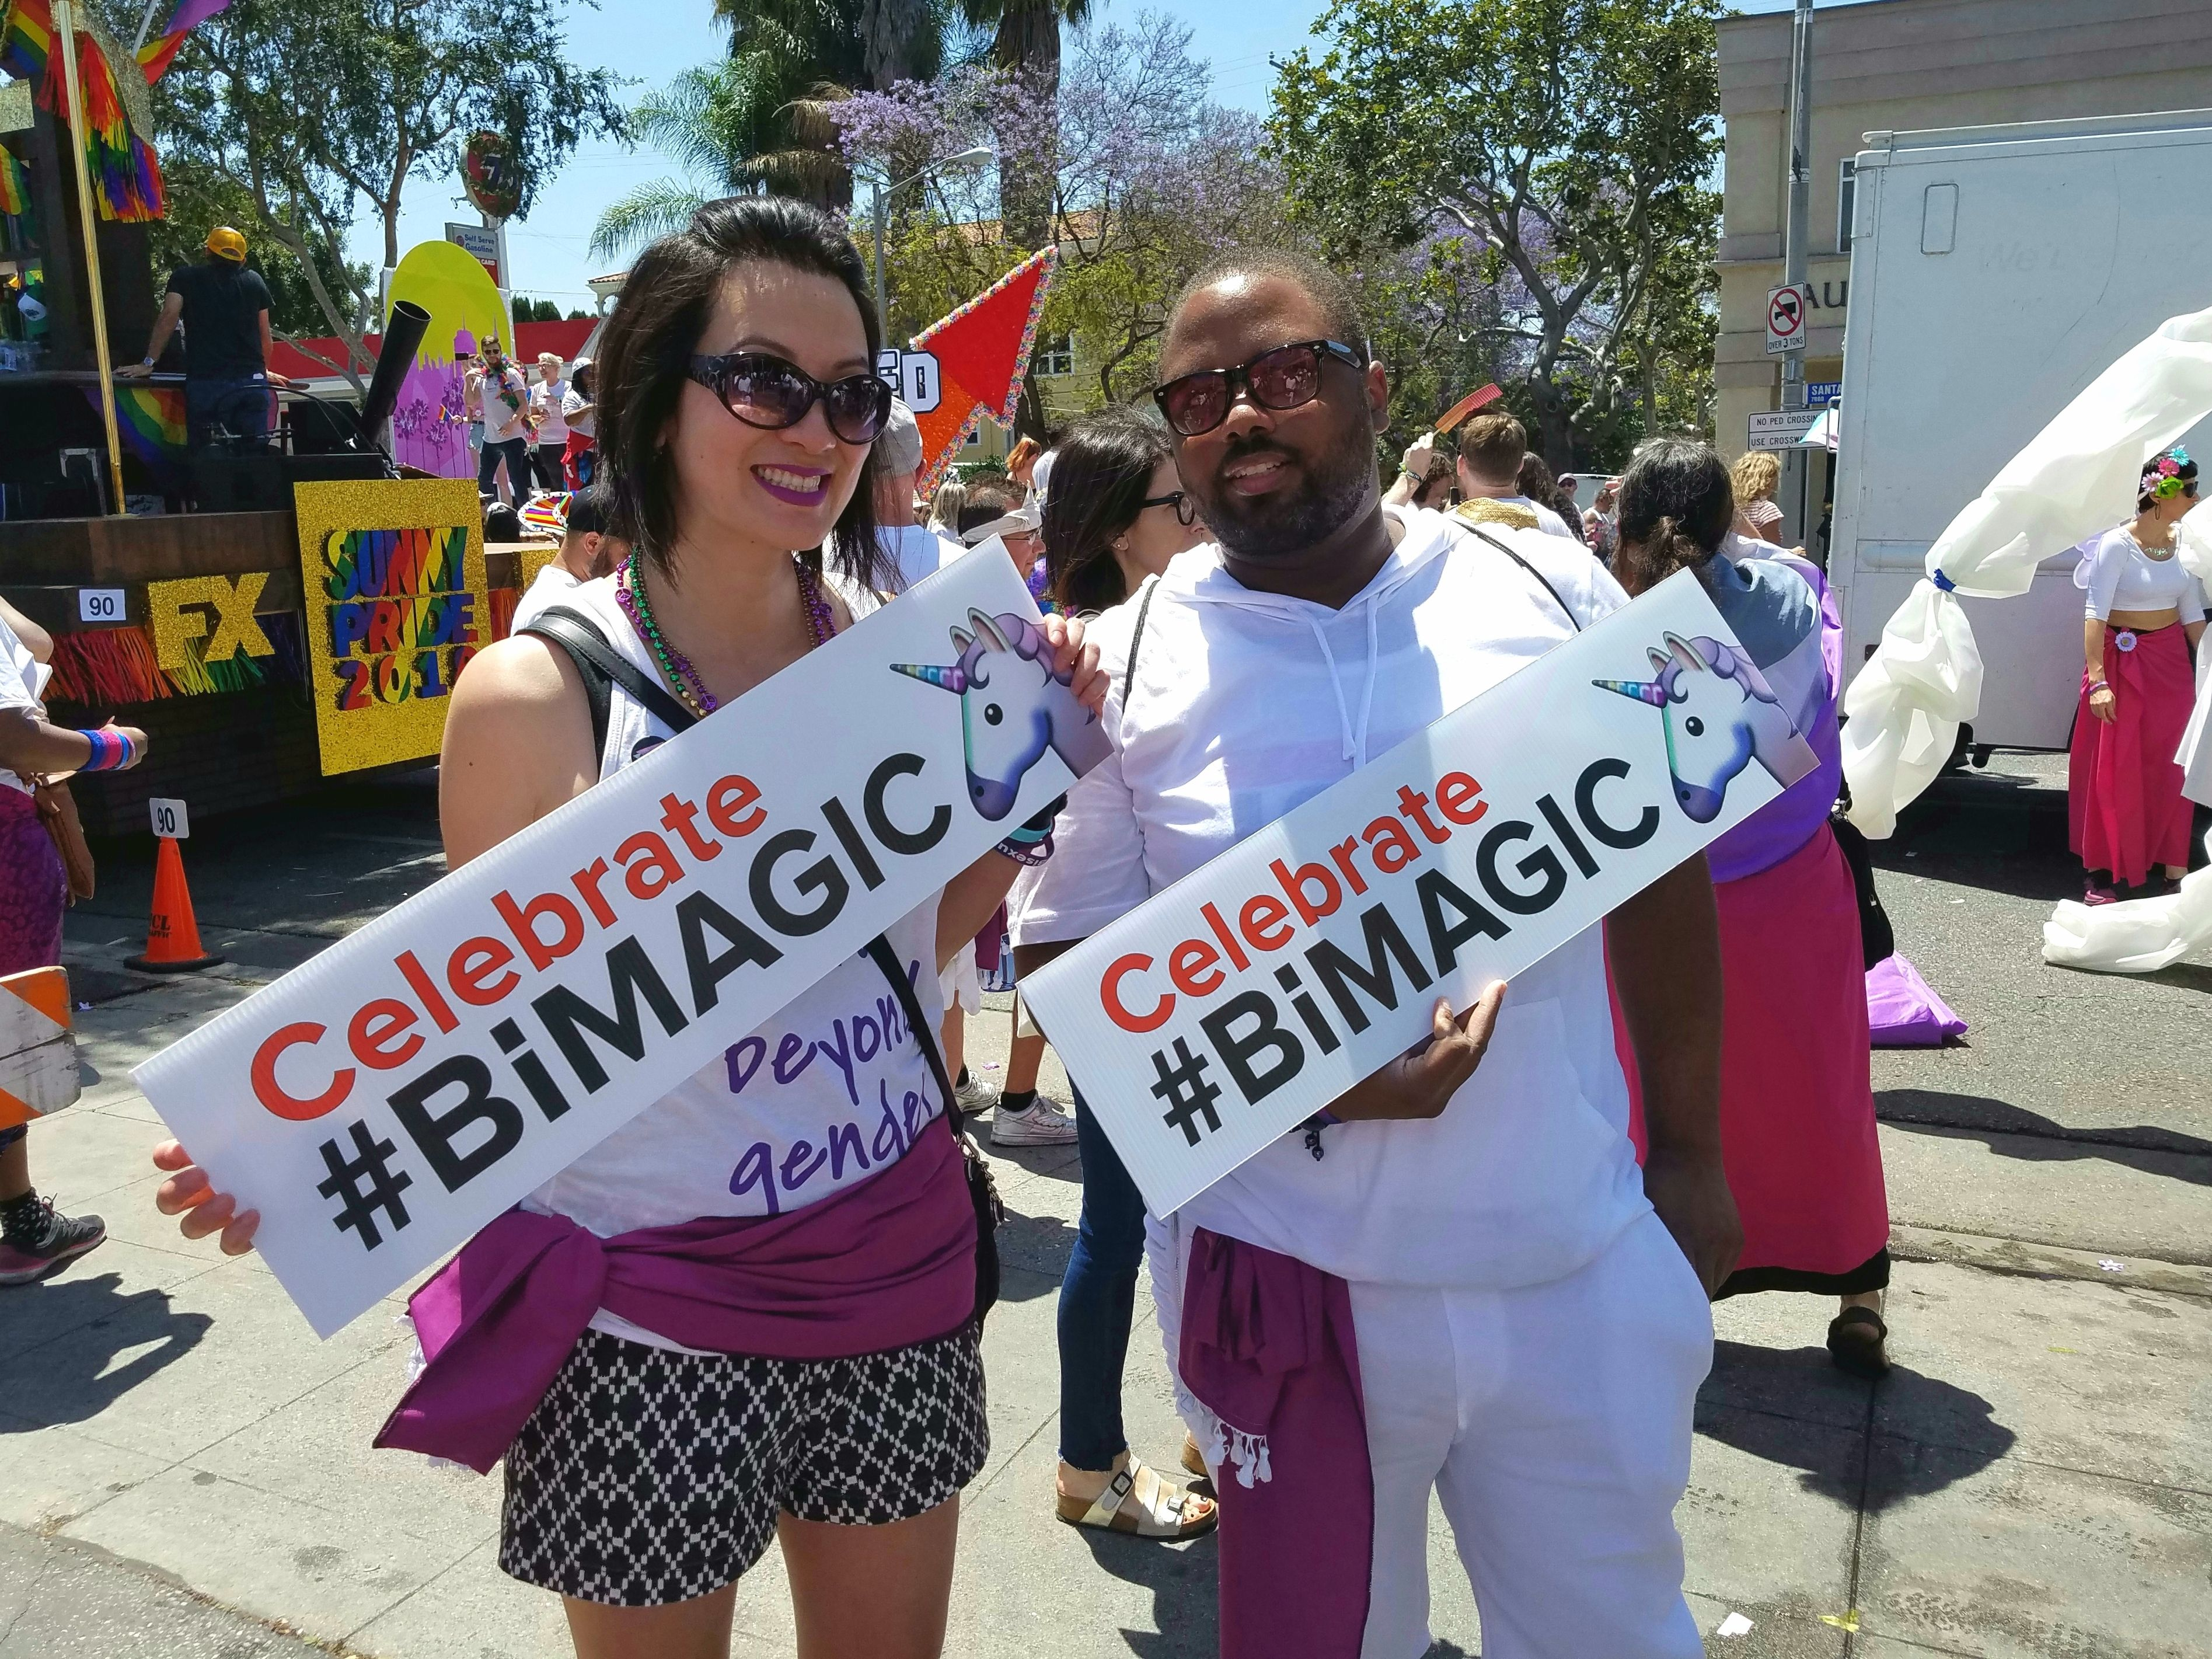 Bisexual community los angeles